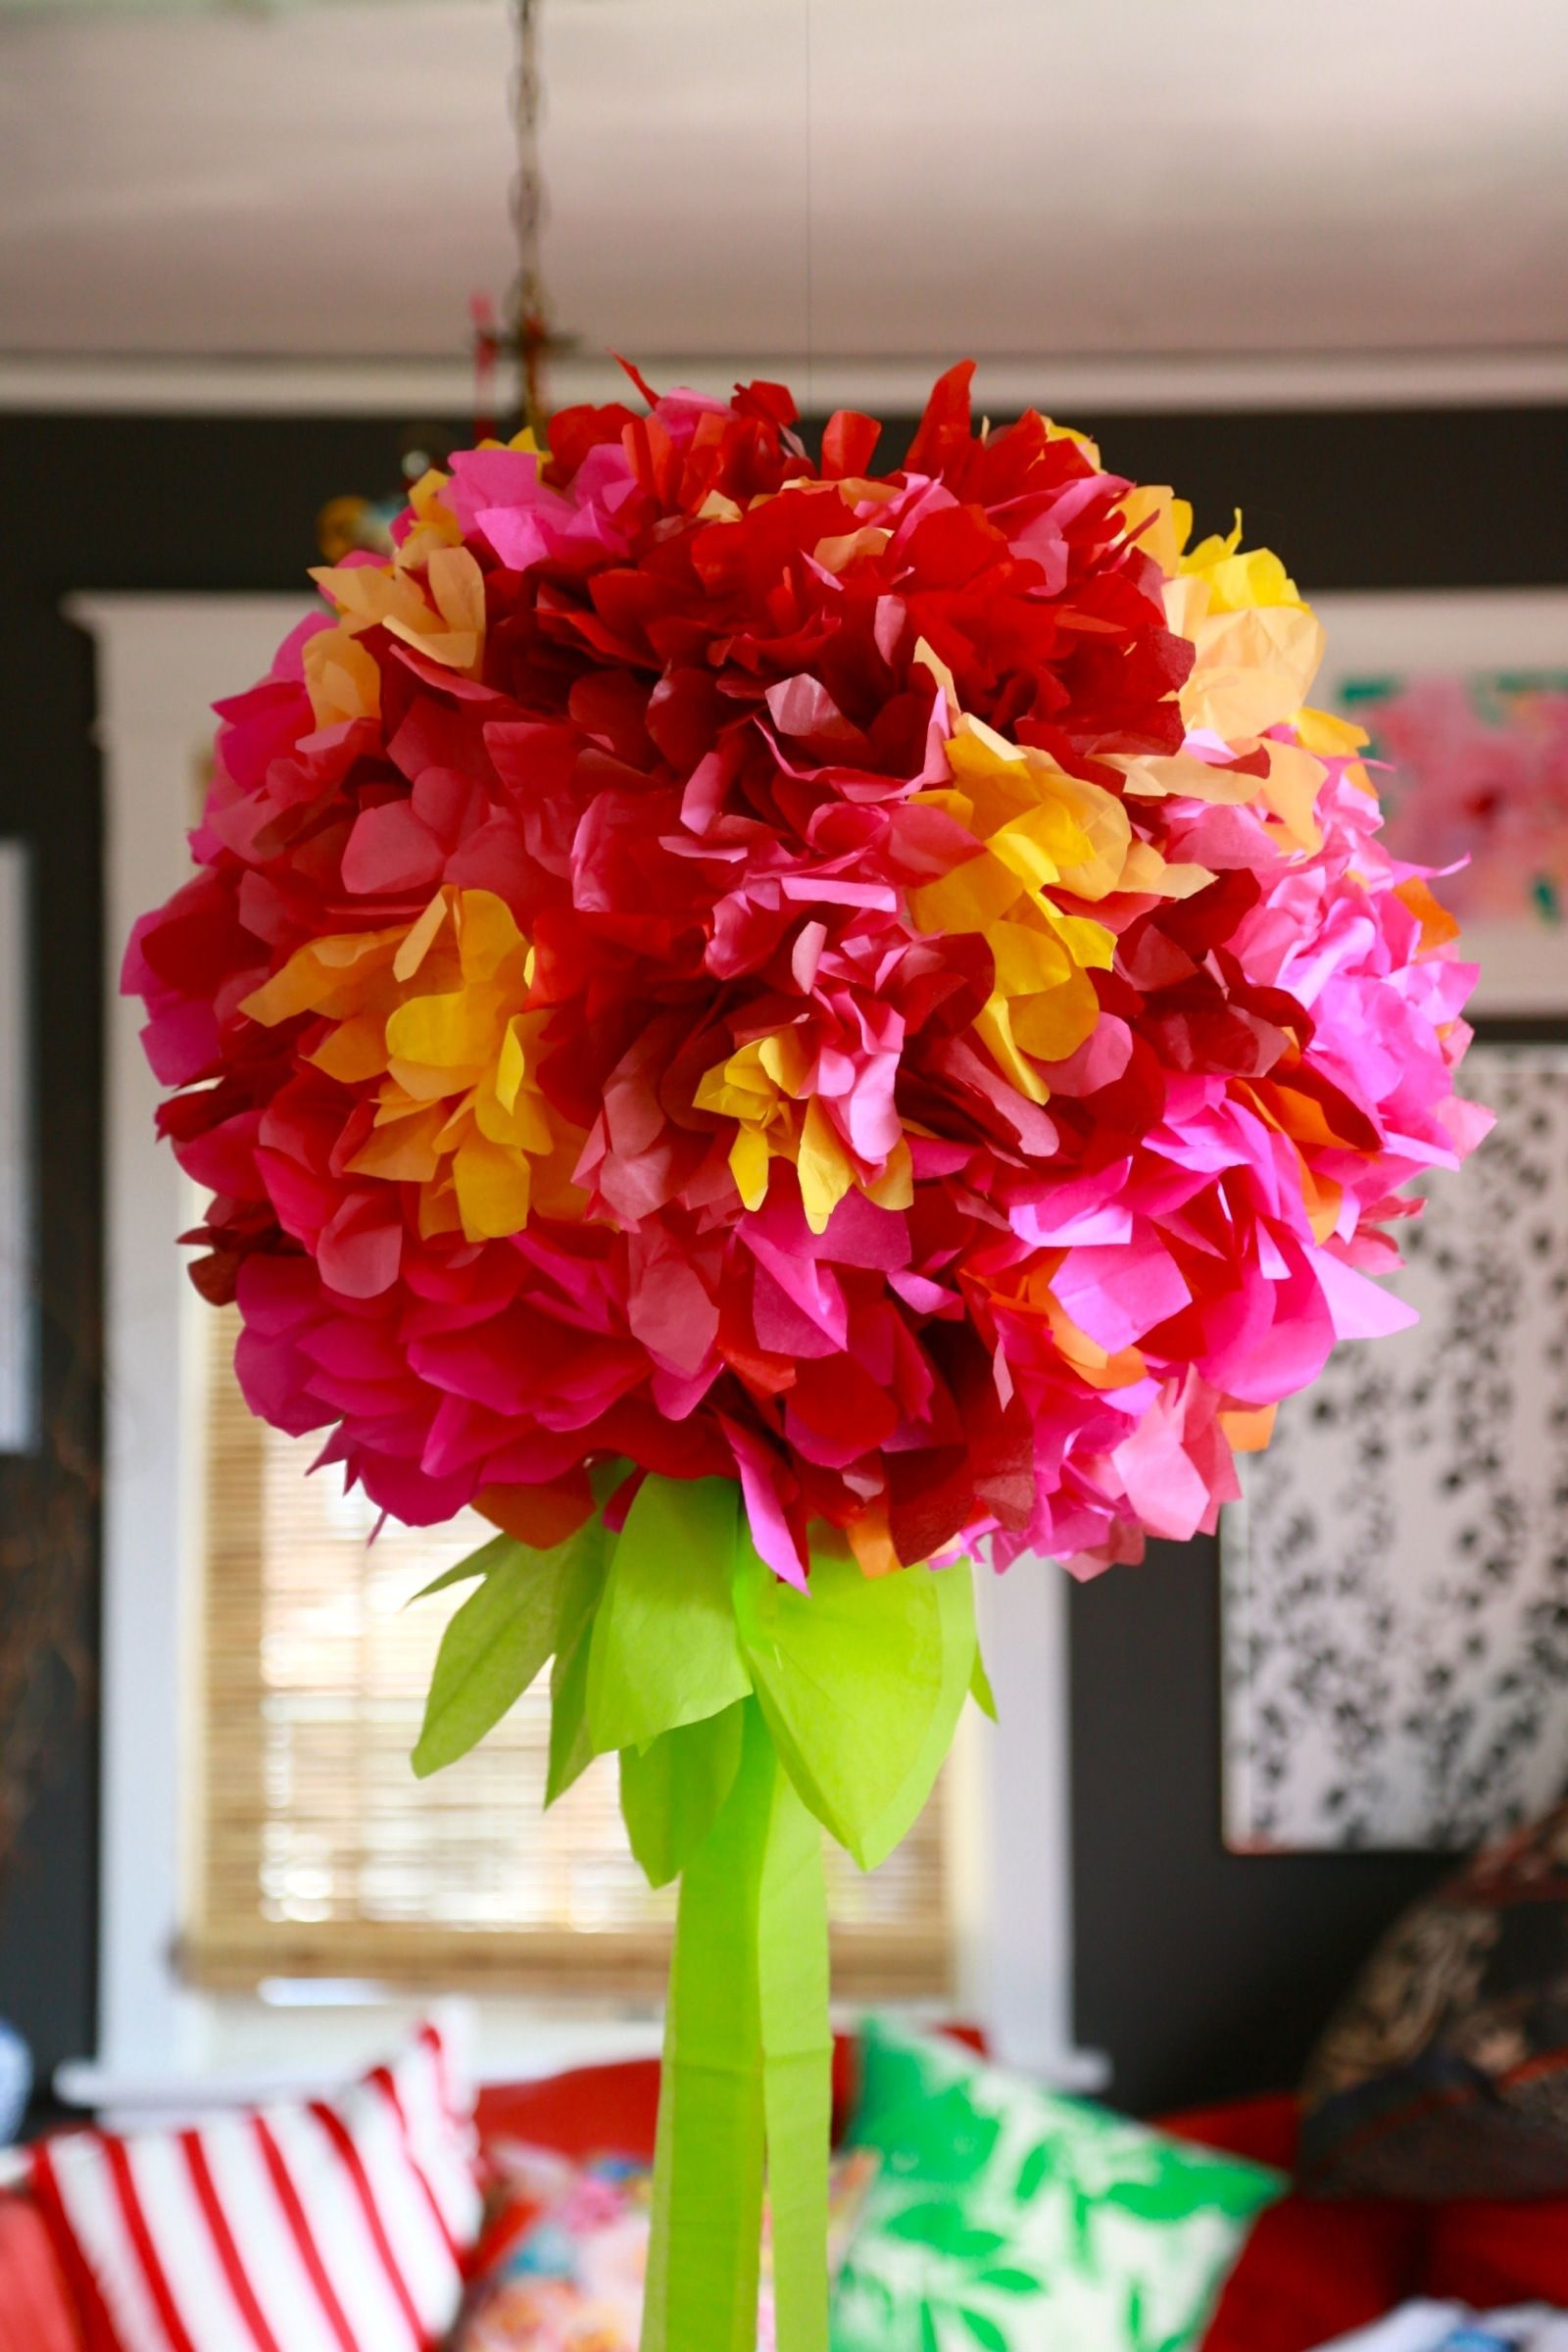 Awesome Easy & Simple Giant Tissue Paper Flower Chandelier